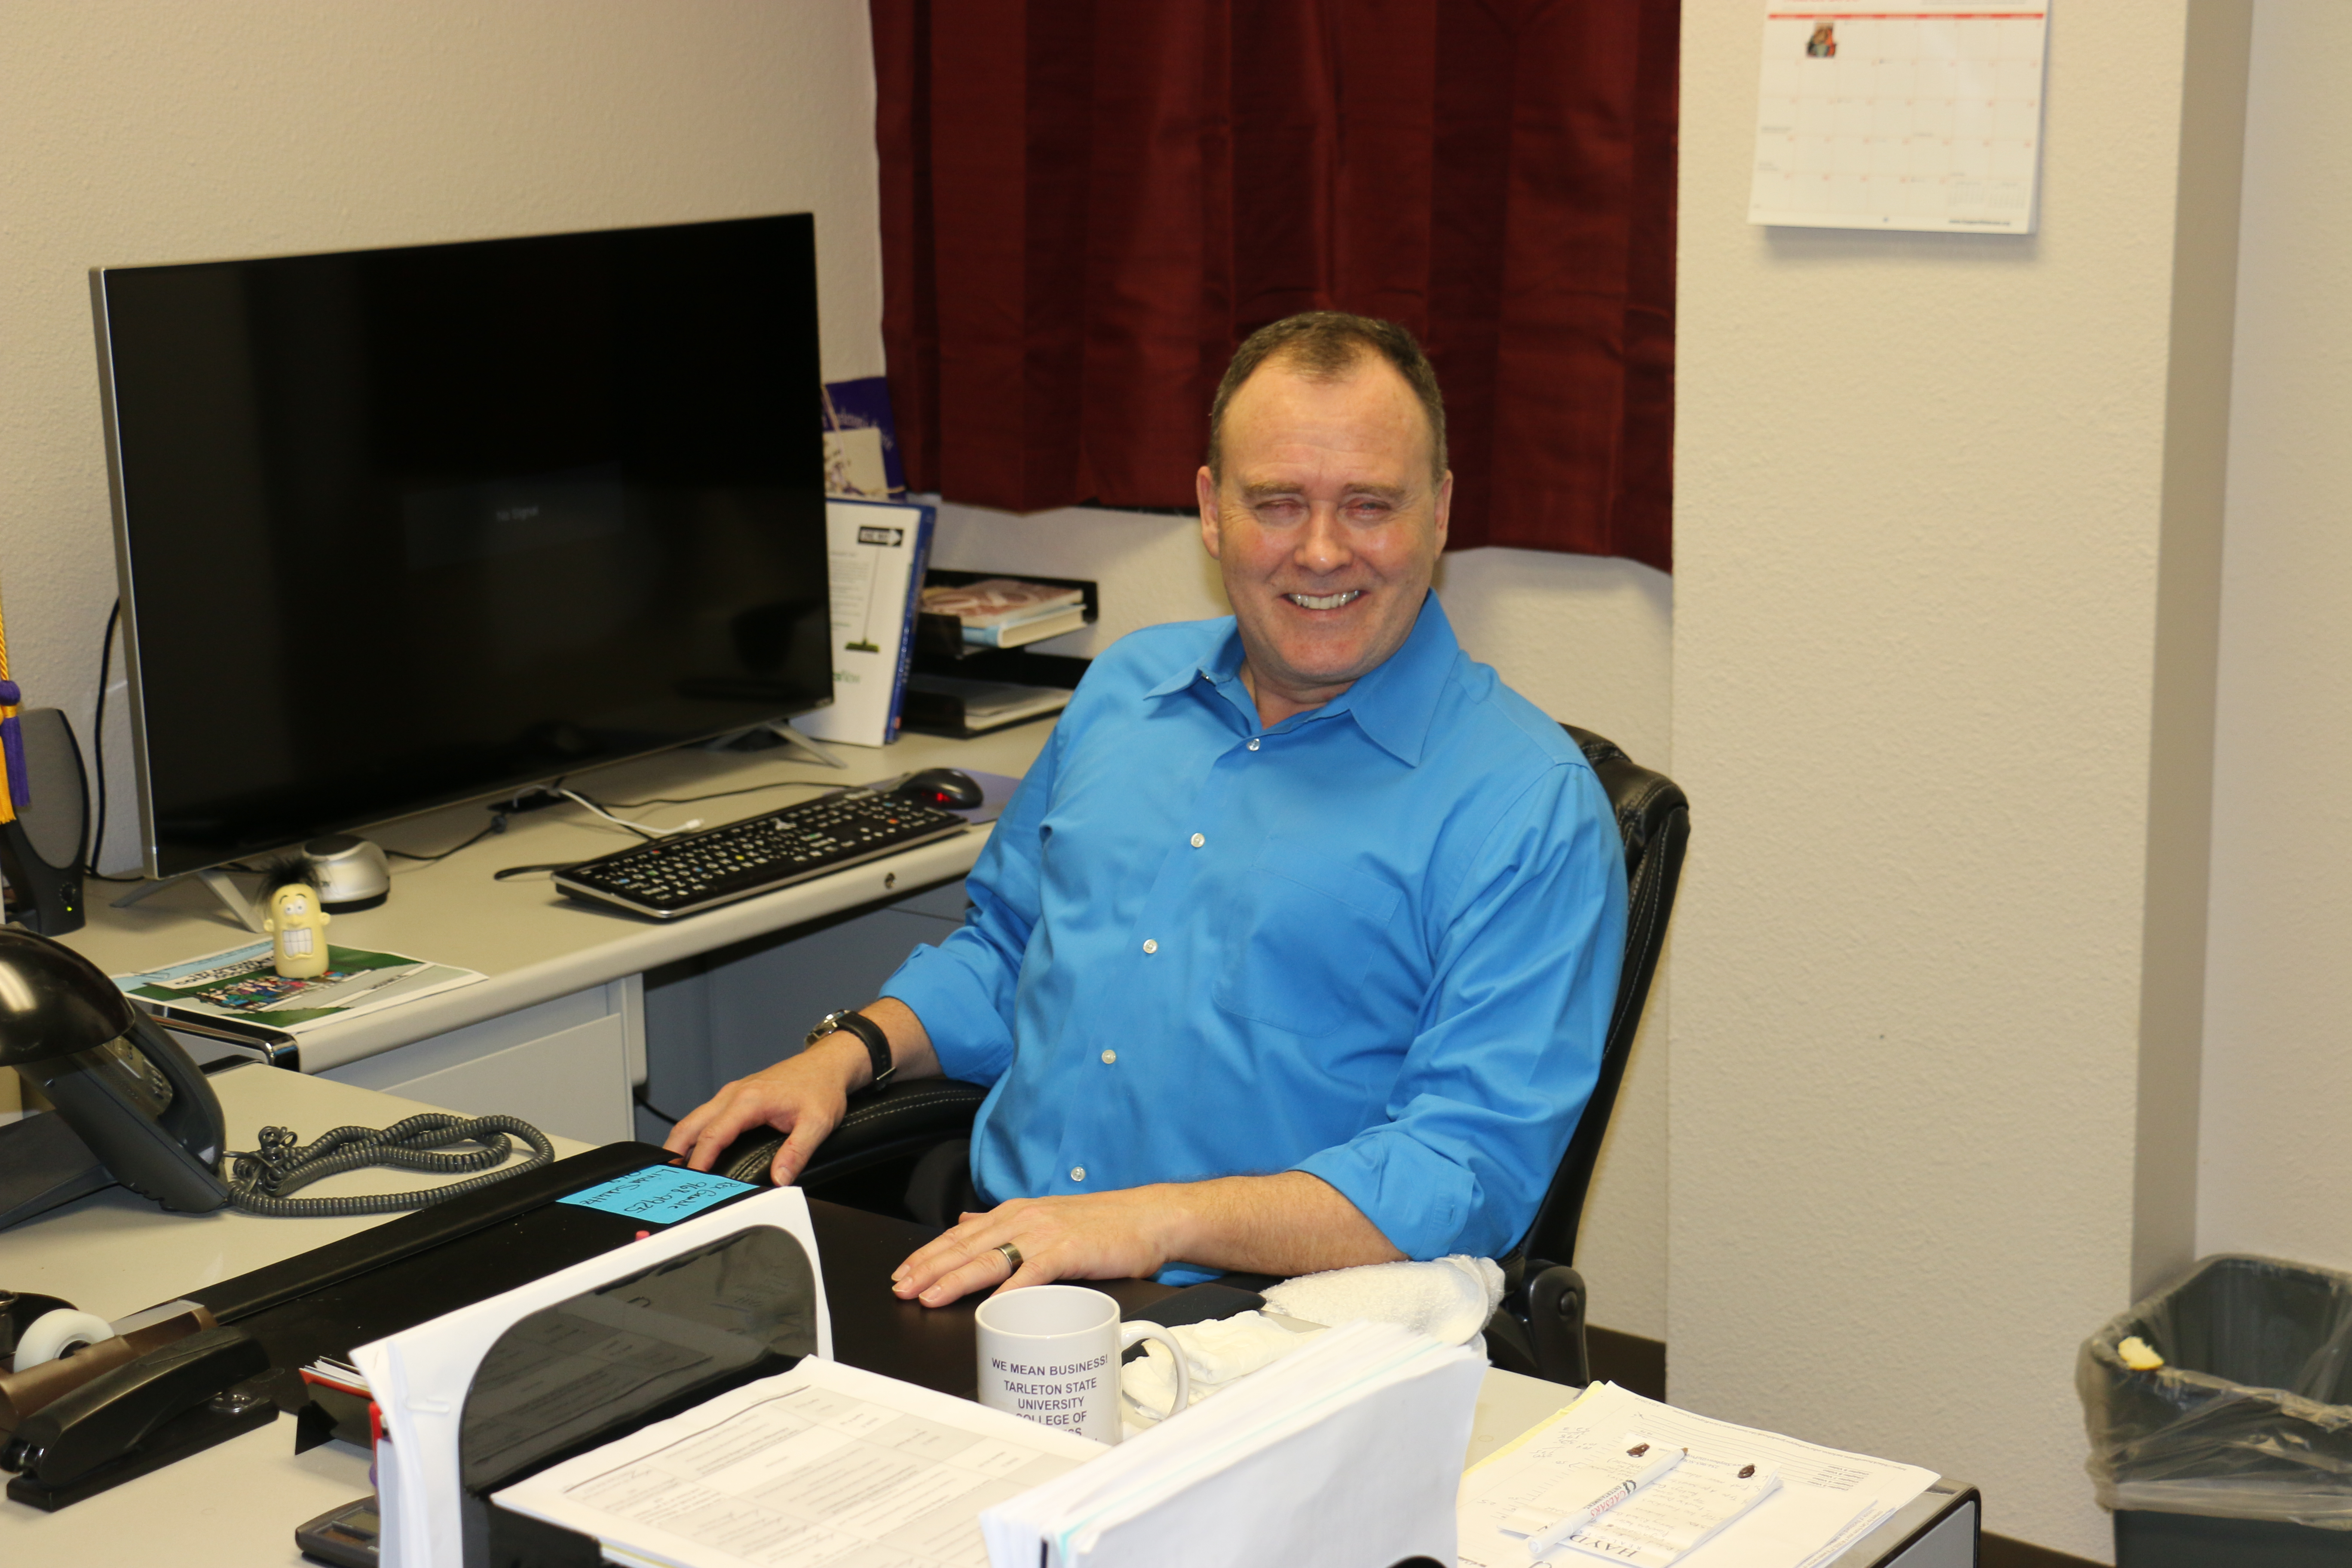 Tarleton instructor adapts to life without vision